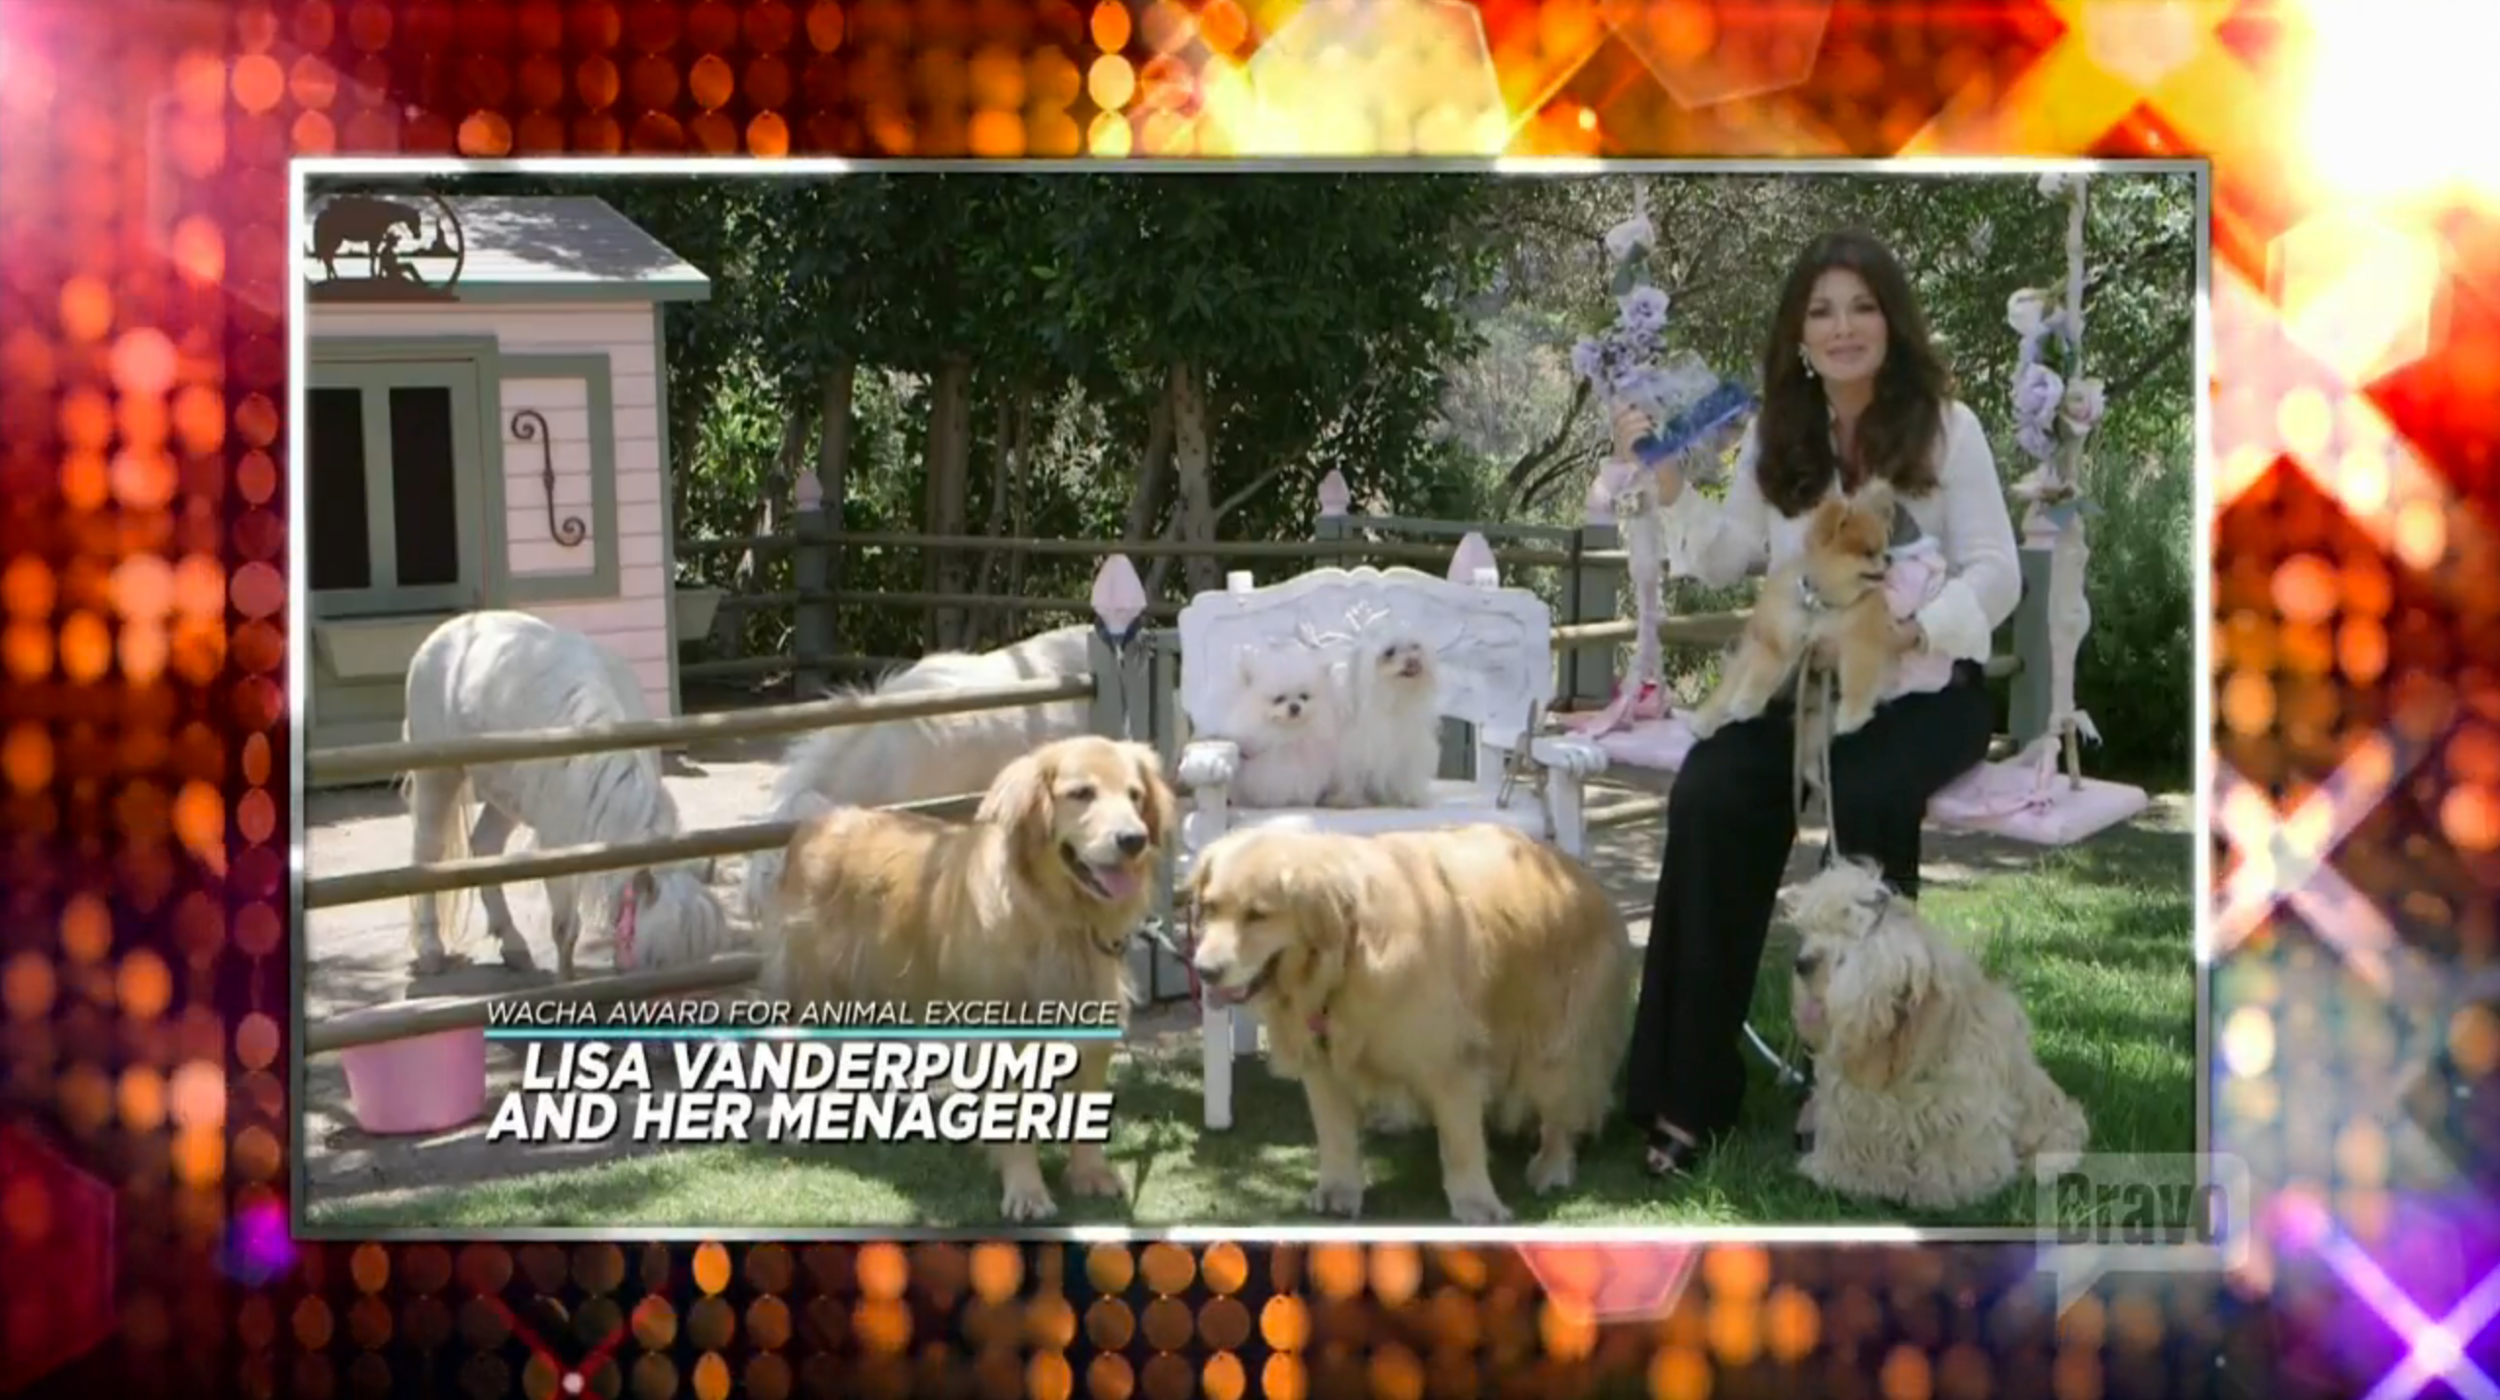 bravo-awards-lisa-vanderpump-menagerie